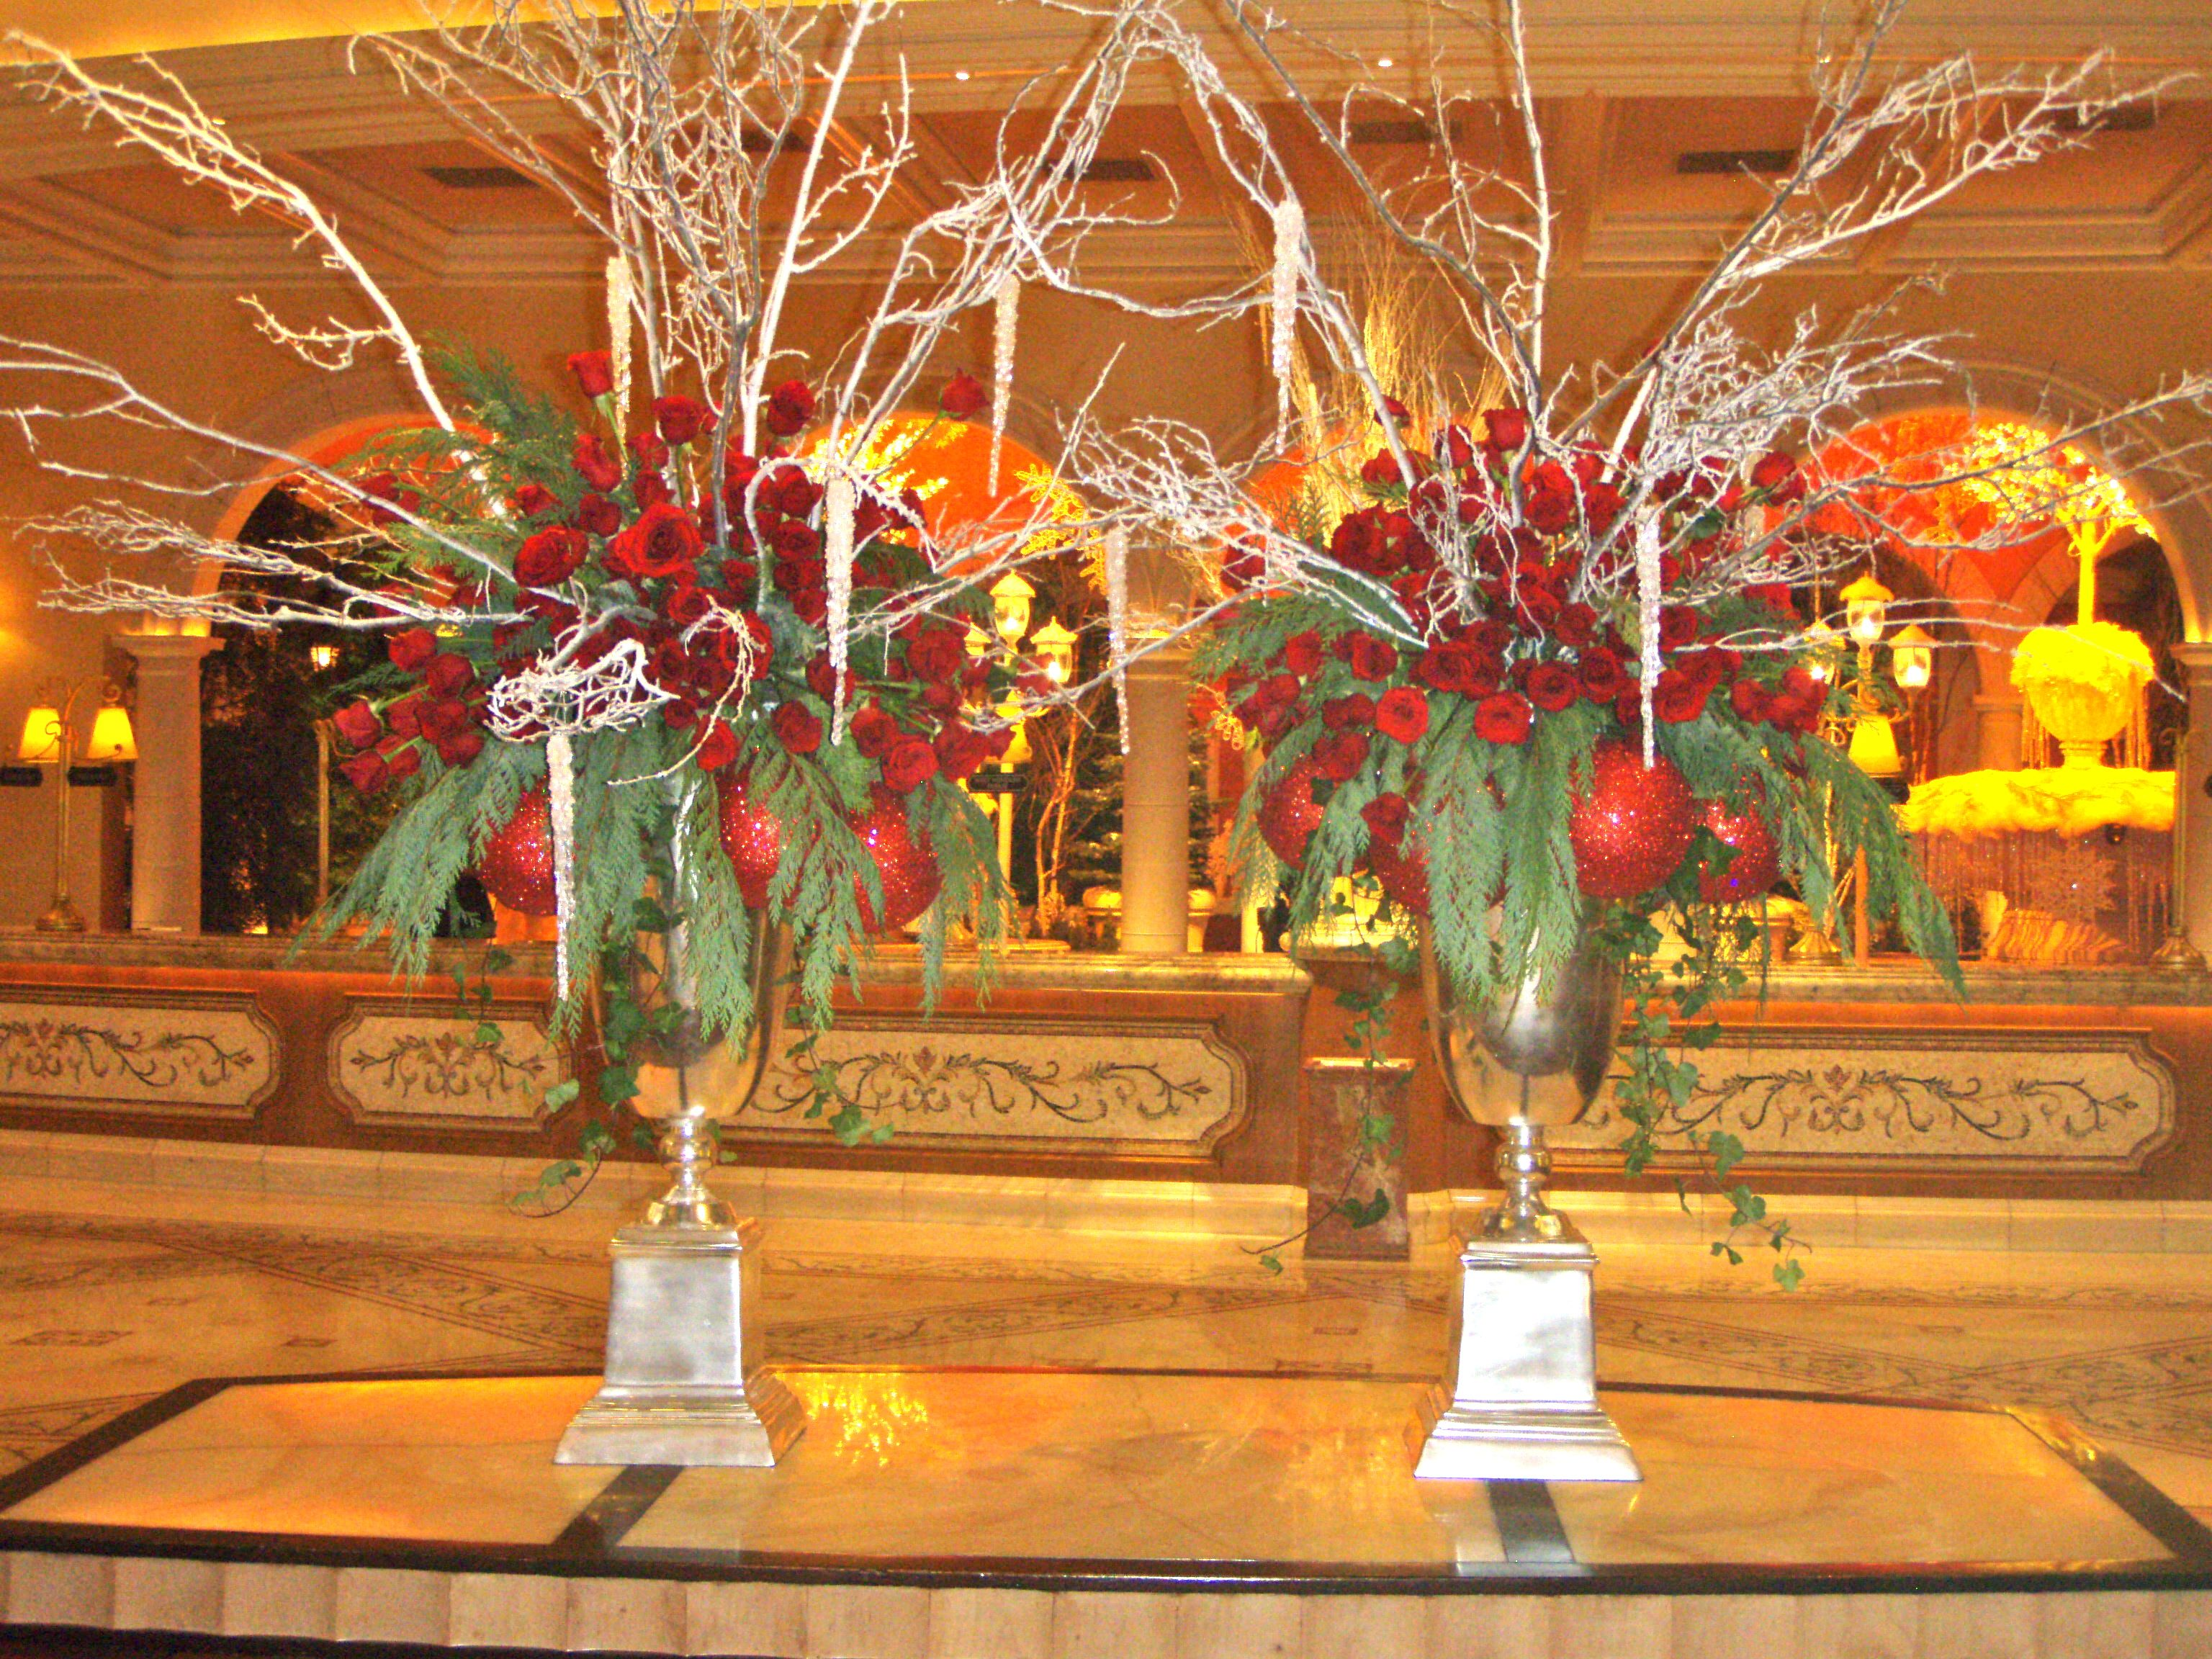 Flowers In The Hotel Lobby The 2 Seasons